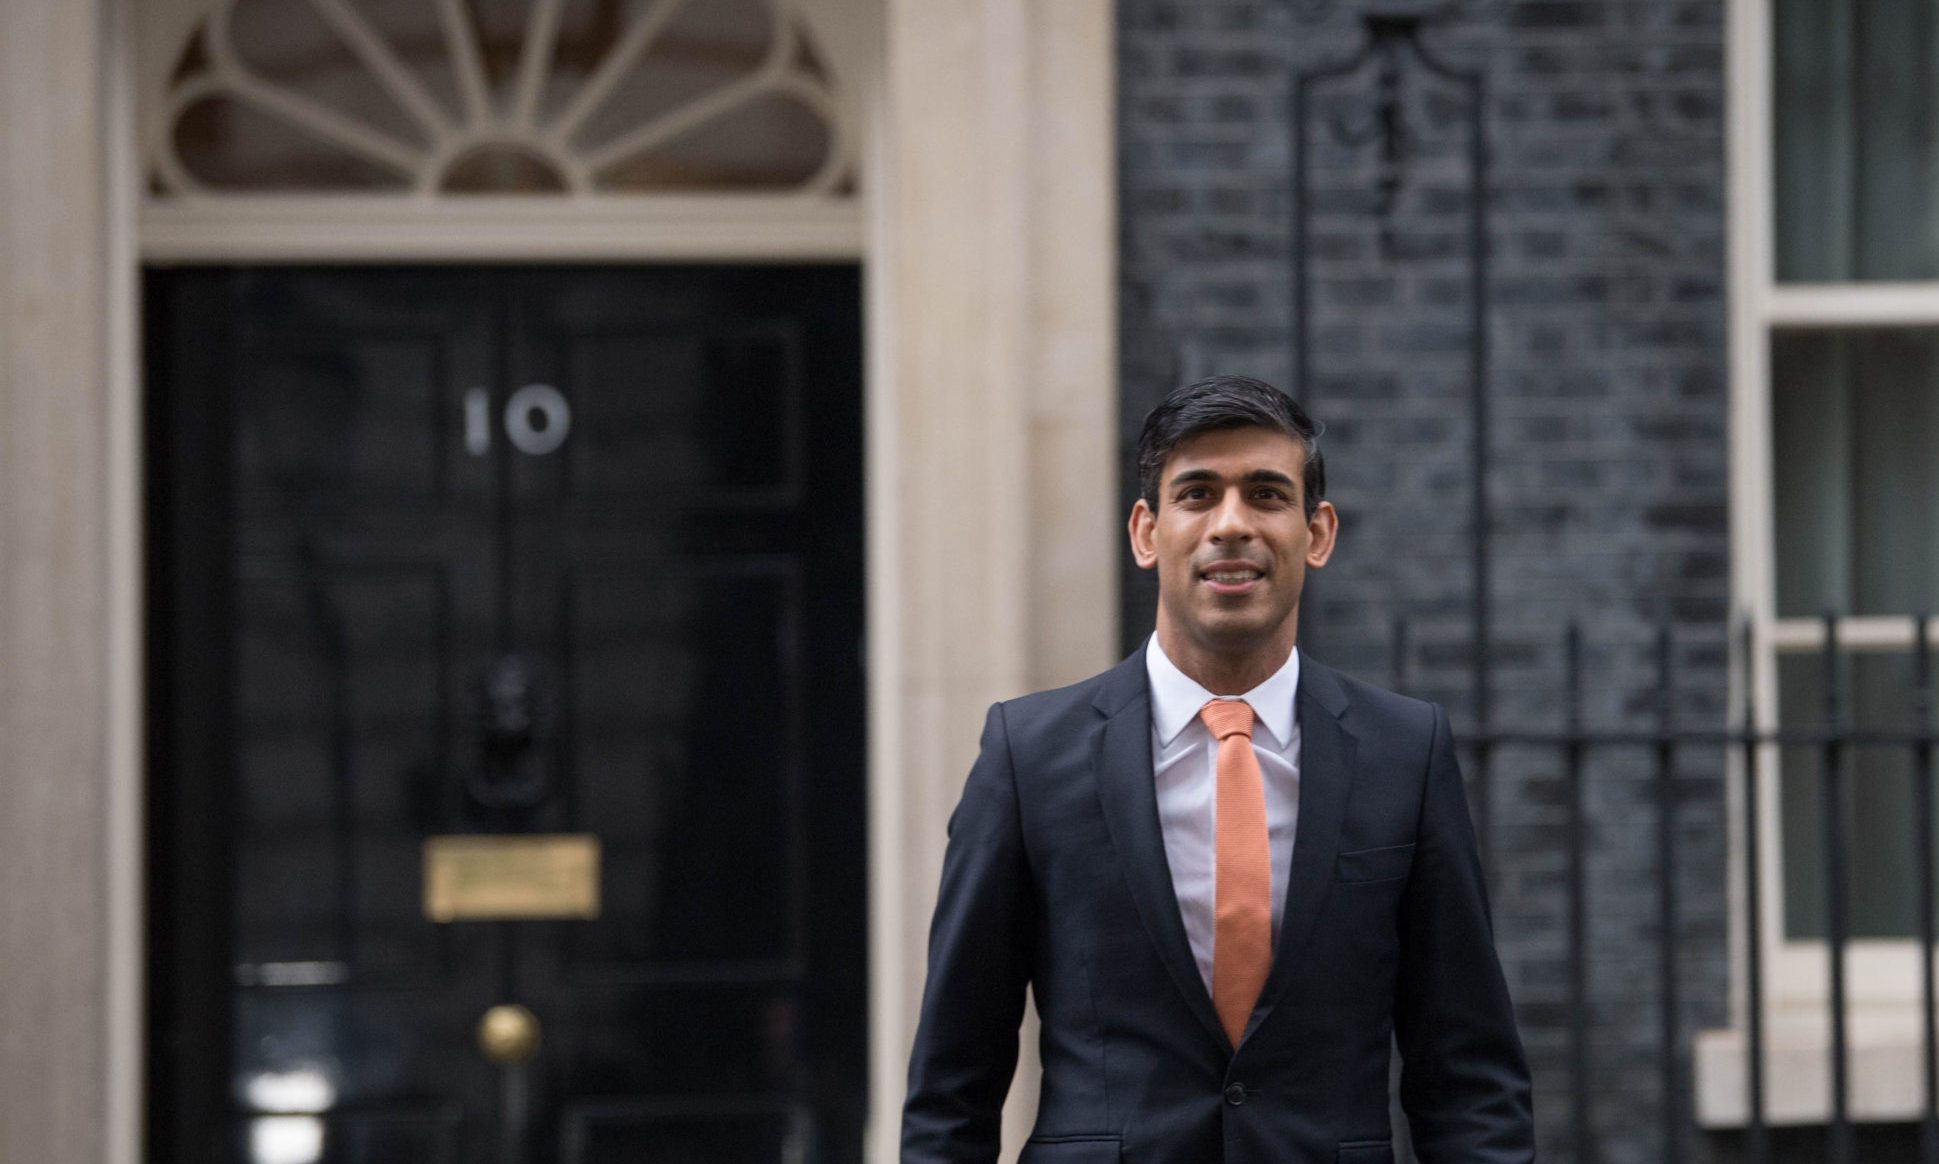 Chancellor of the Exchequer Rishi Sunak was the most high-profile, and unexpected, appointment of the day.